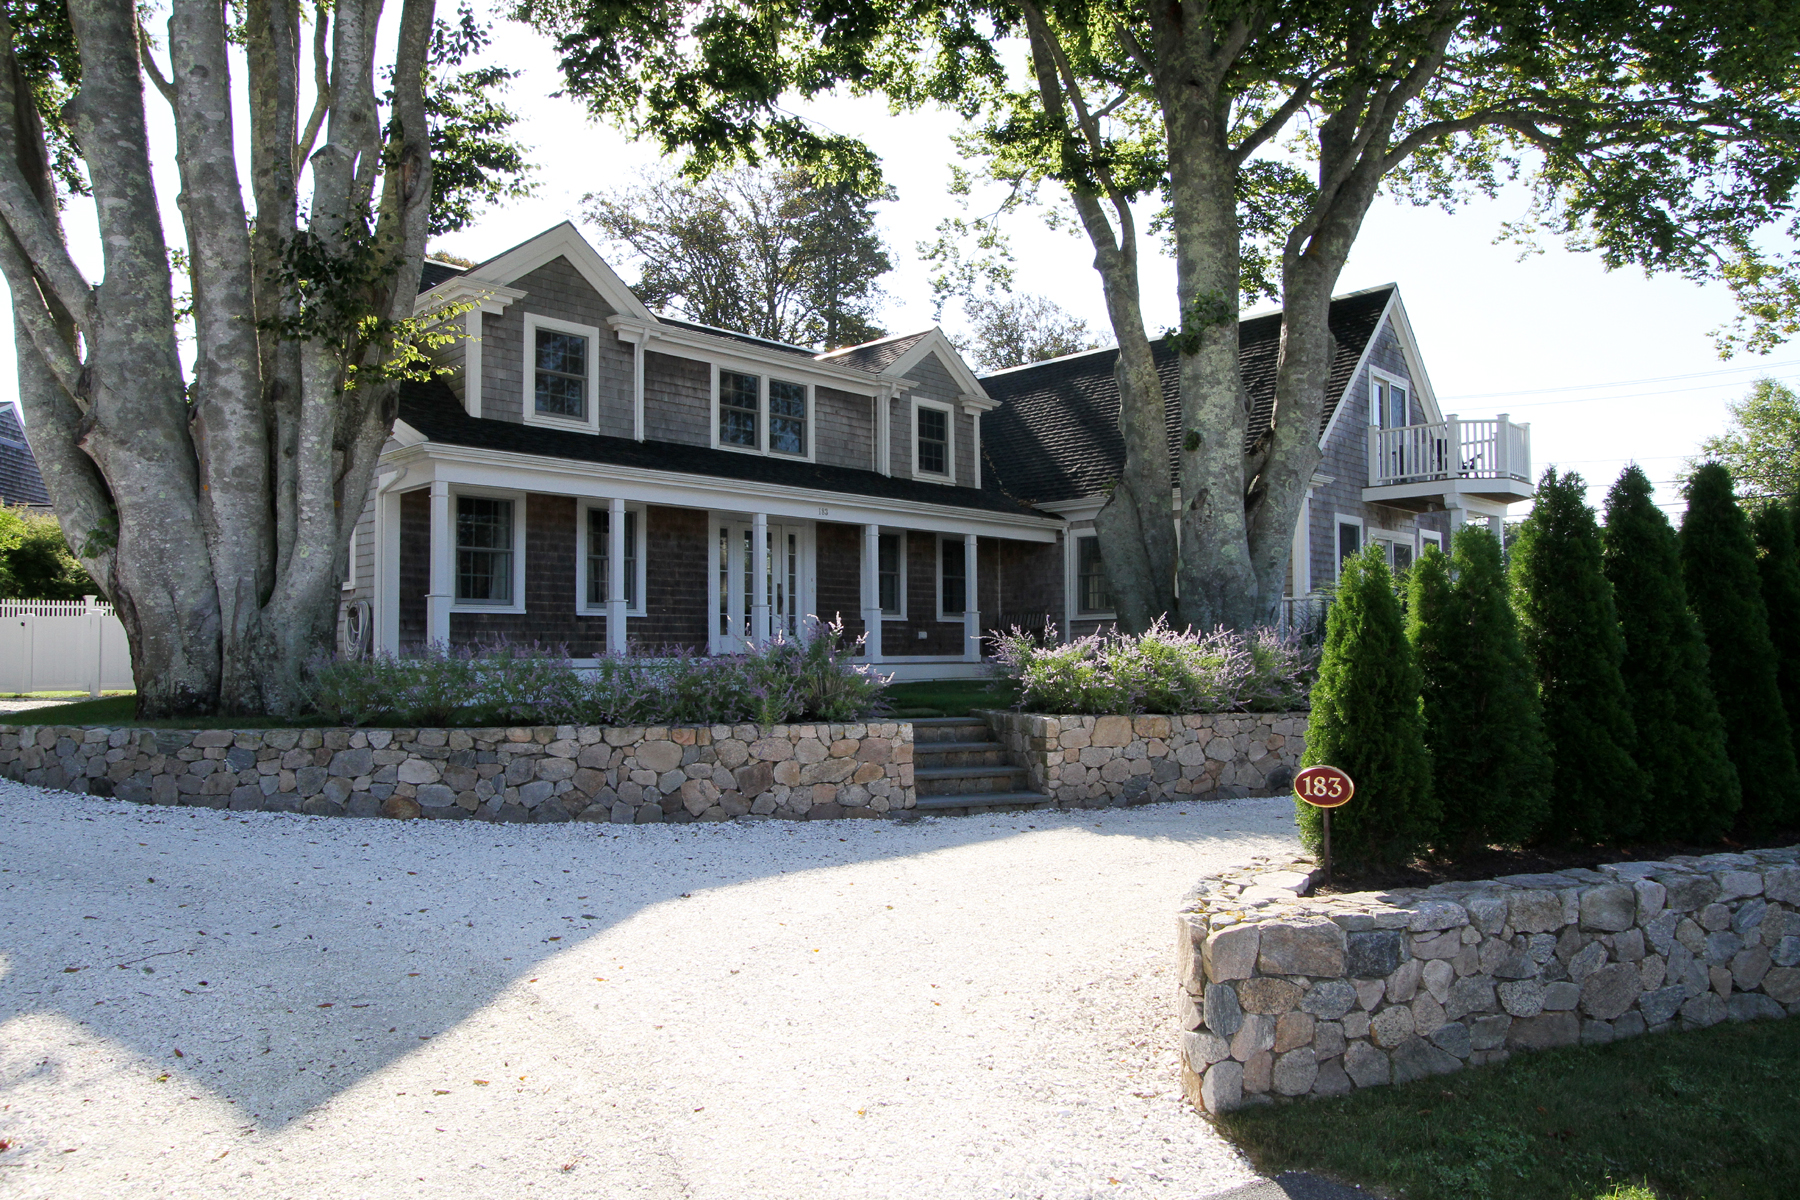 Single Family Home for Sale at EXQUISITE COASTAL LIVING 183 Stage Harbor Road Chatham, Massachusetts 02633 United States